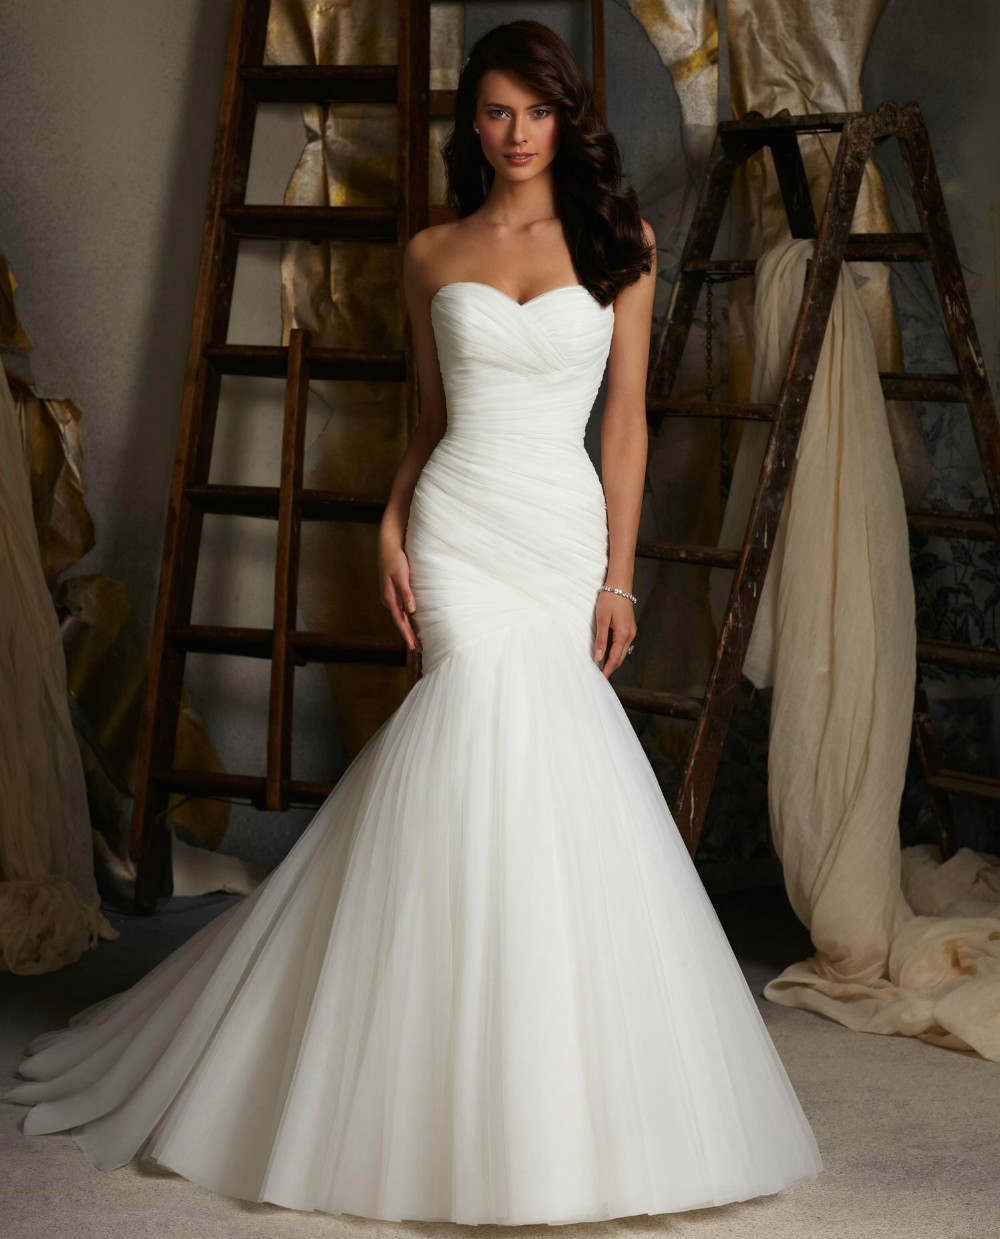 Strapless Ivory Wedding Dresses